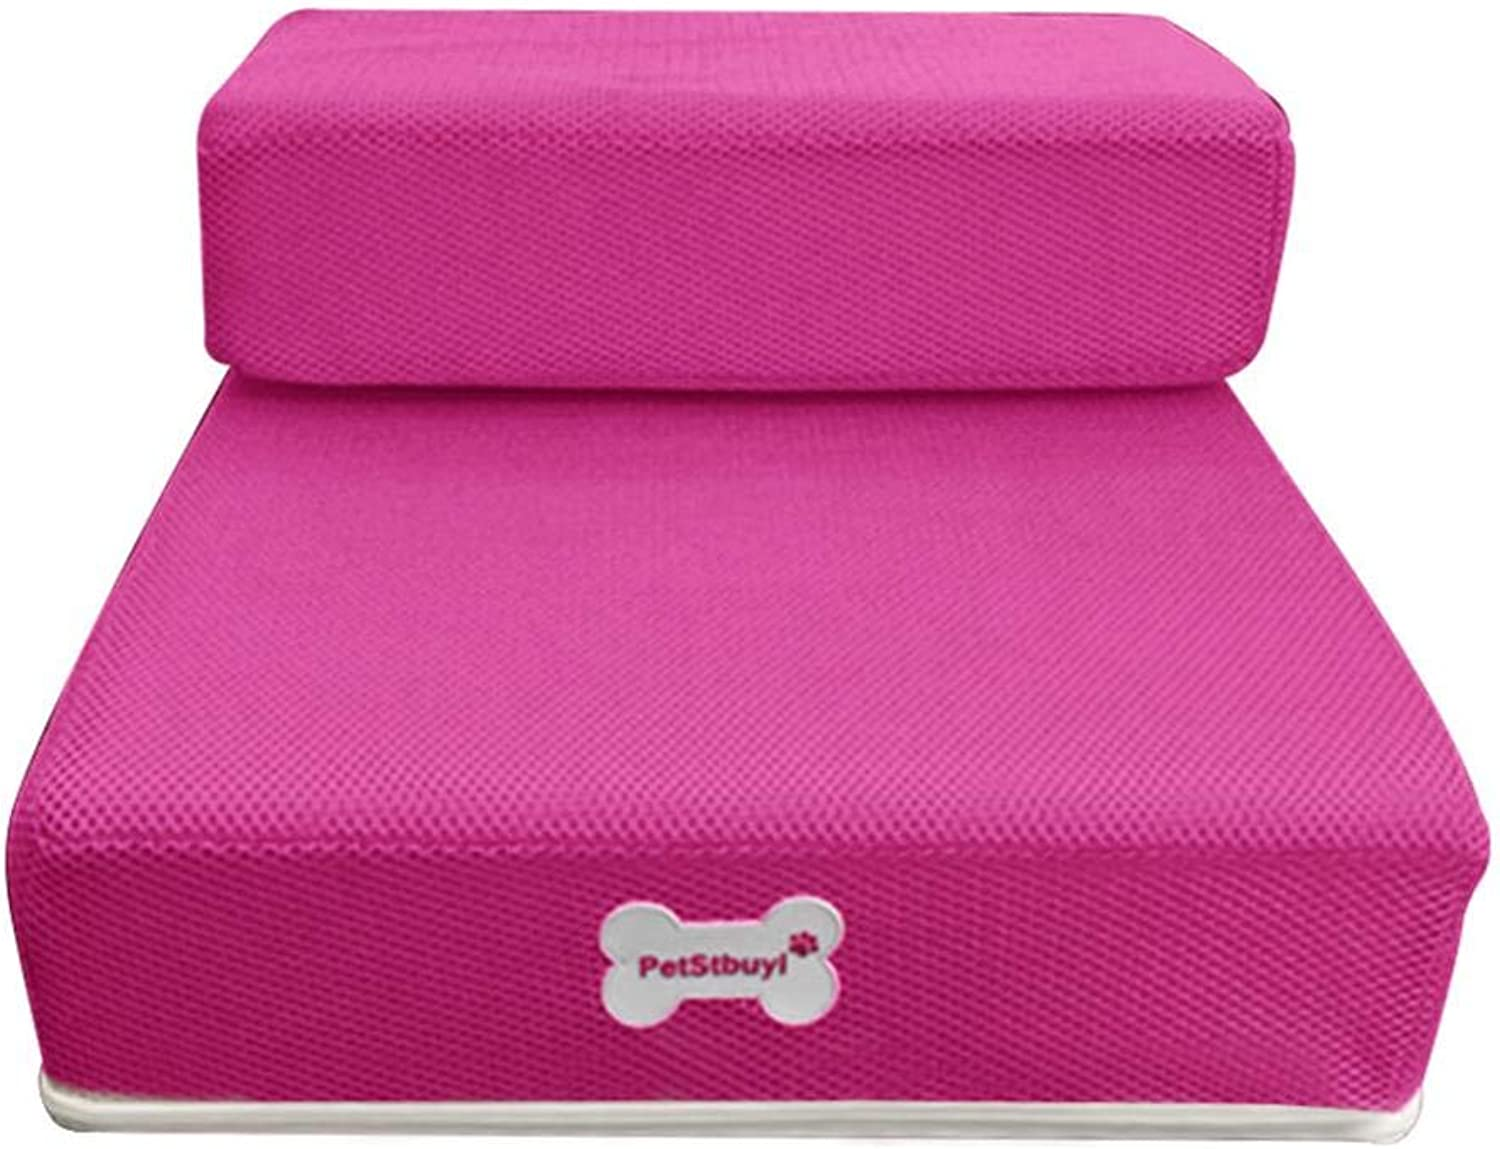 Folding Pets Stairs, Breathable Double Layer Pet Dog Cat Stairs Steps With Soft Cushion Removable And Washable Grid Cover Steps Sofa Foam safely suitable for puppy, kitten